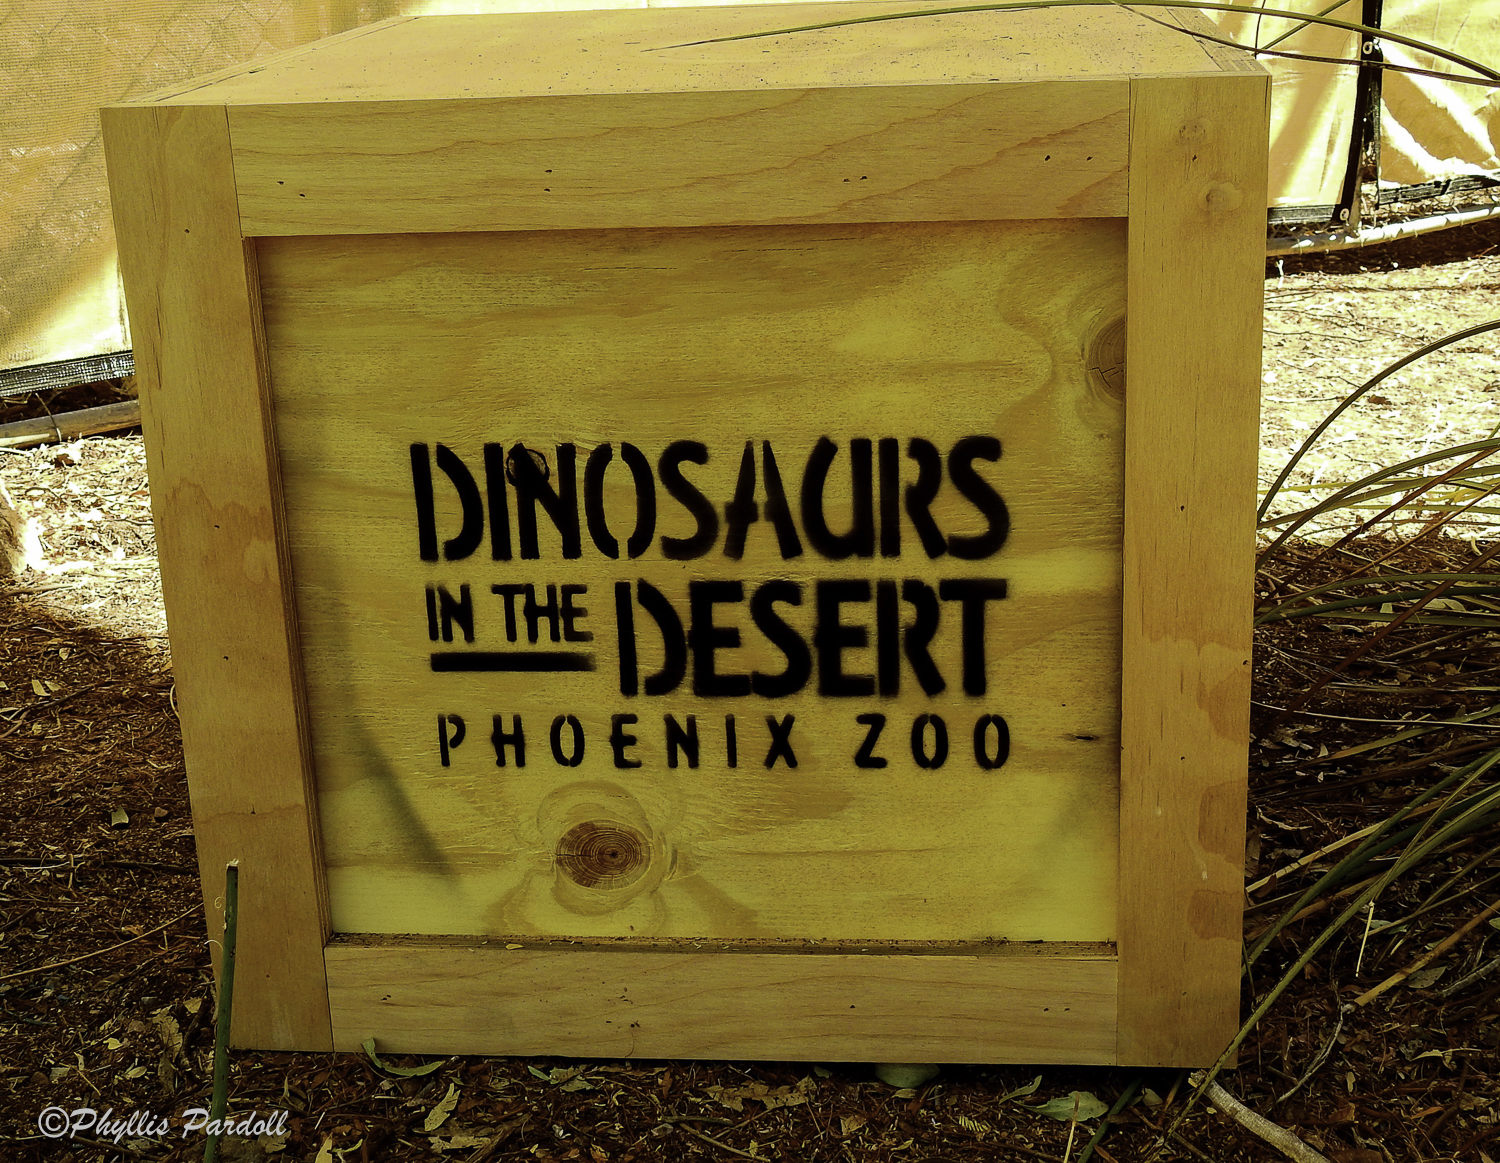 Dinosaurs in the Desert-1.jpg